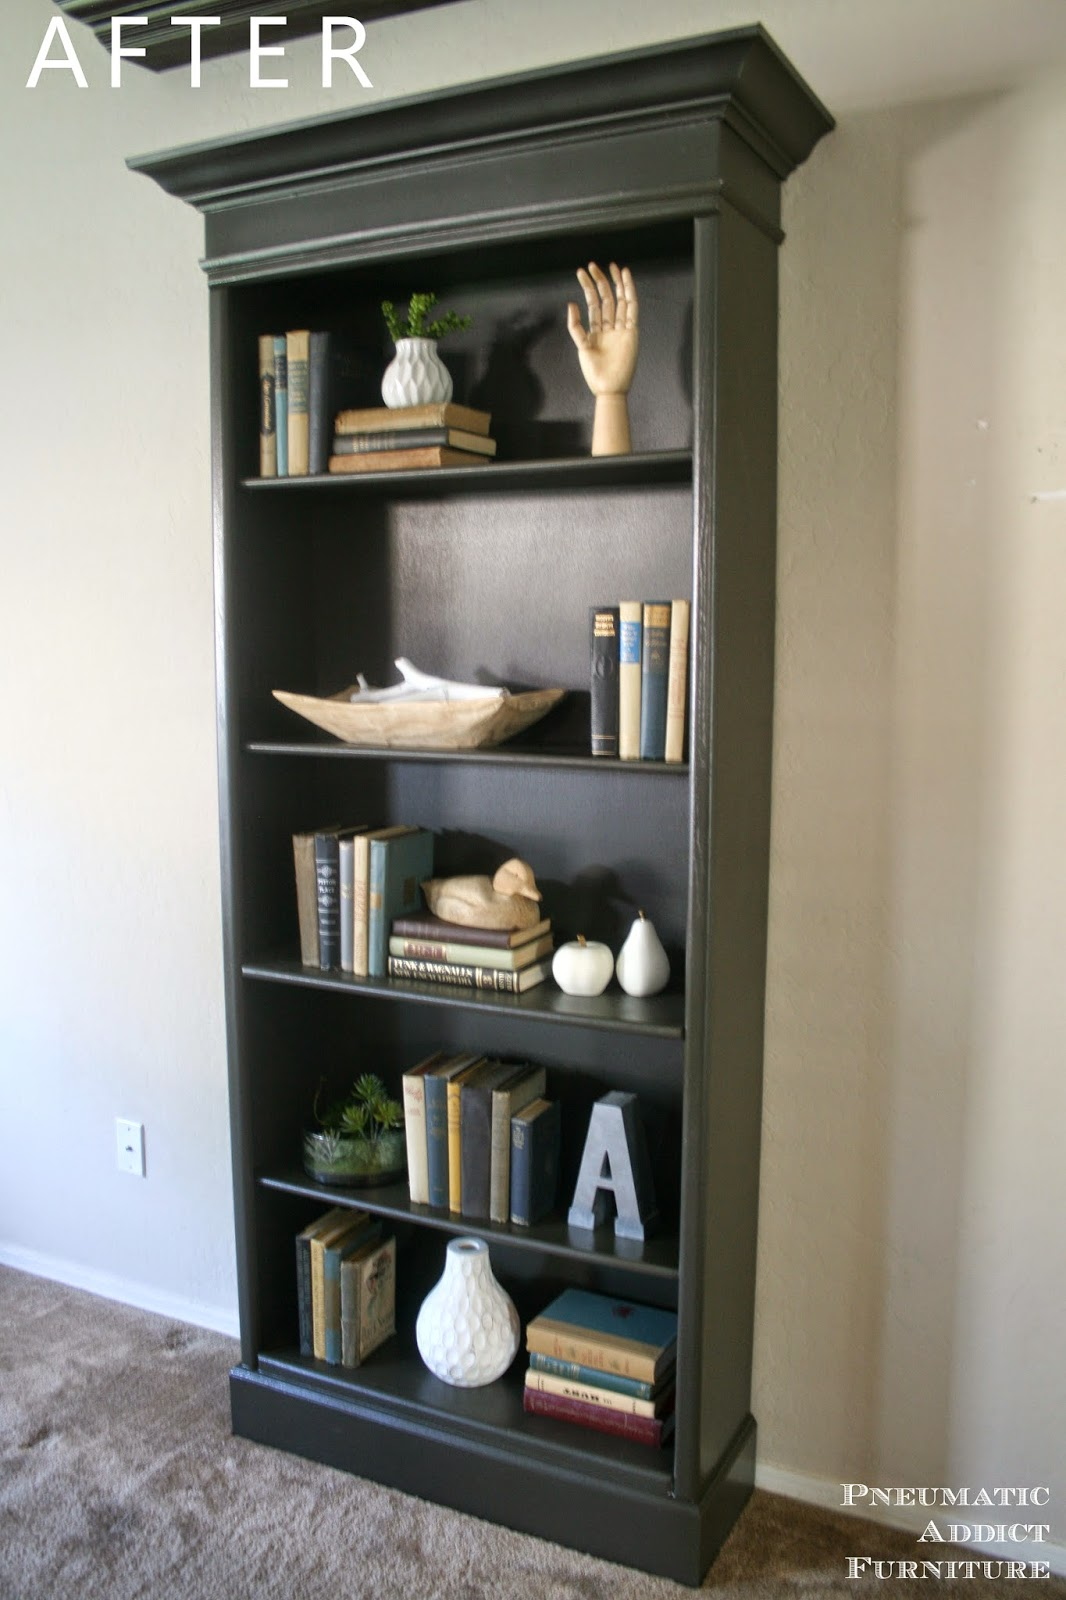 How to upgrade bookshelves pneumatic addict